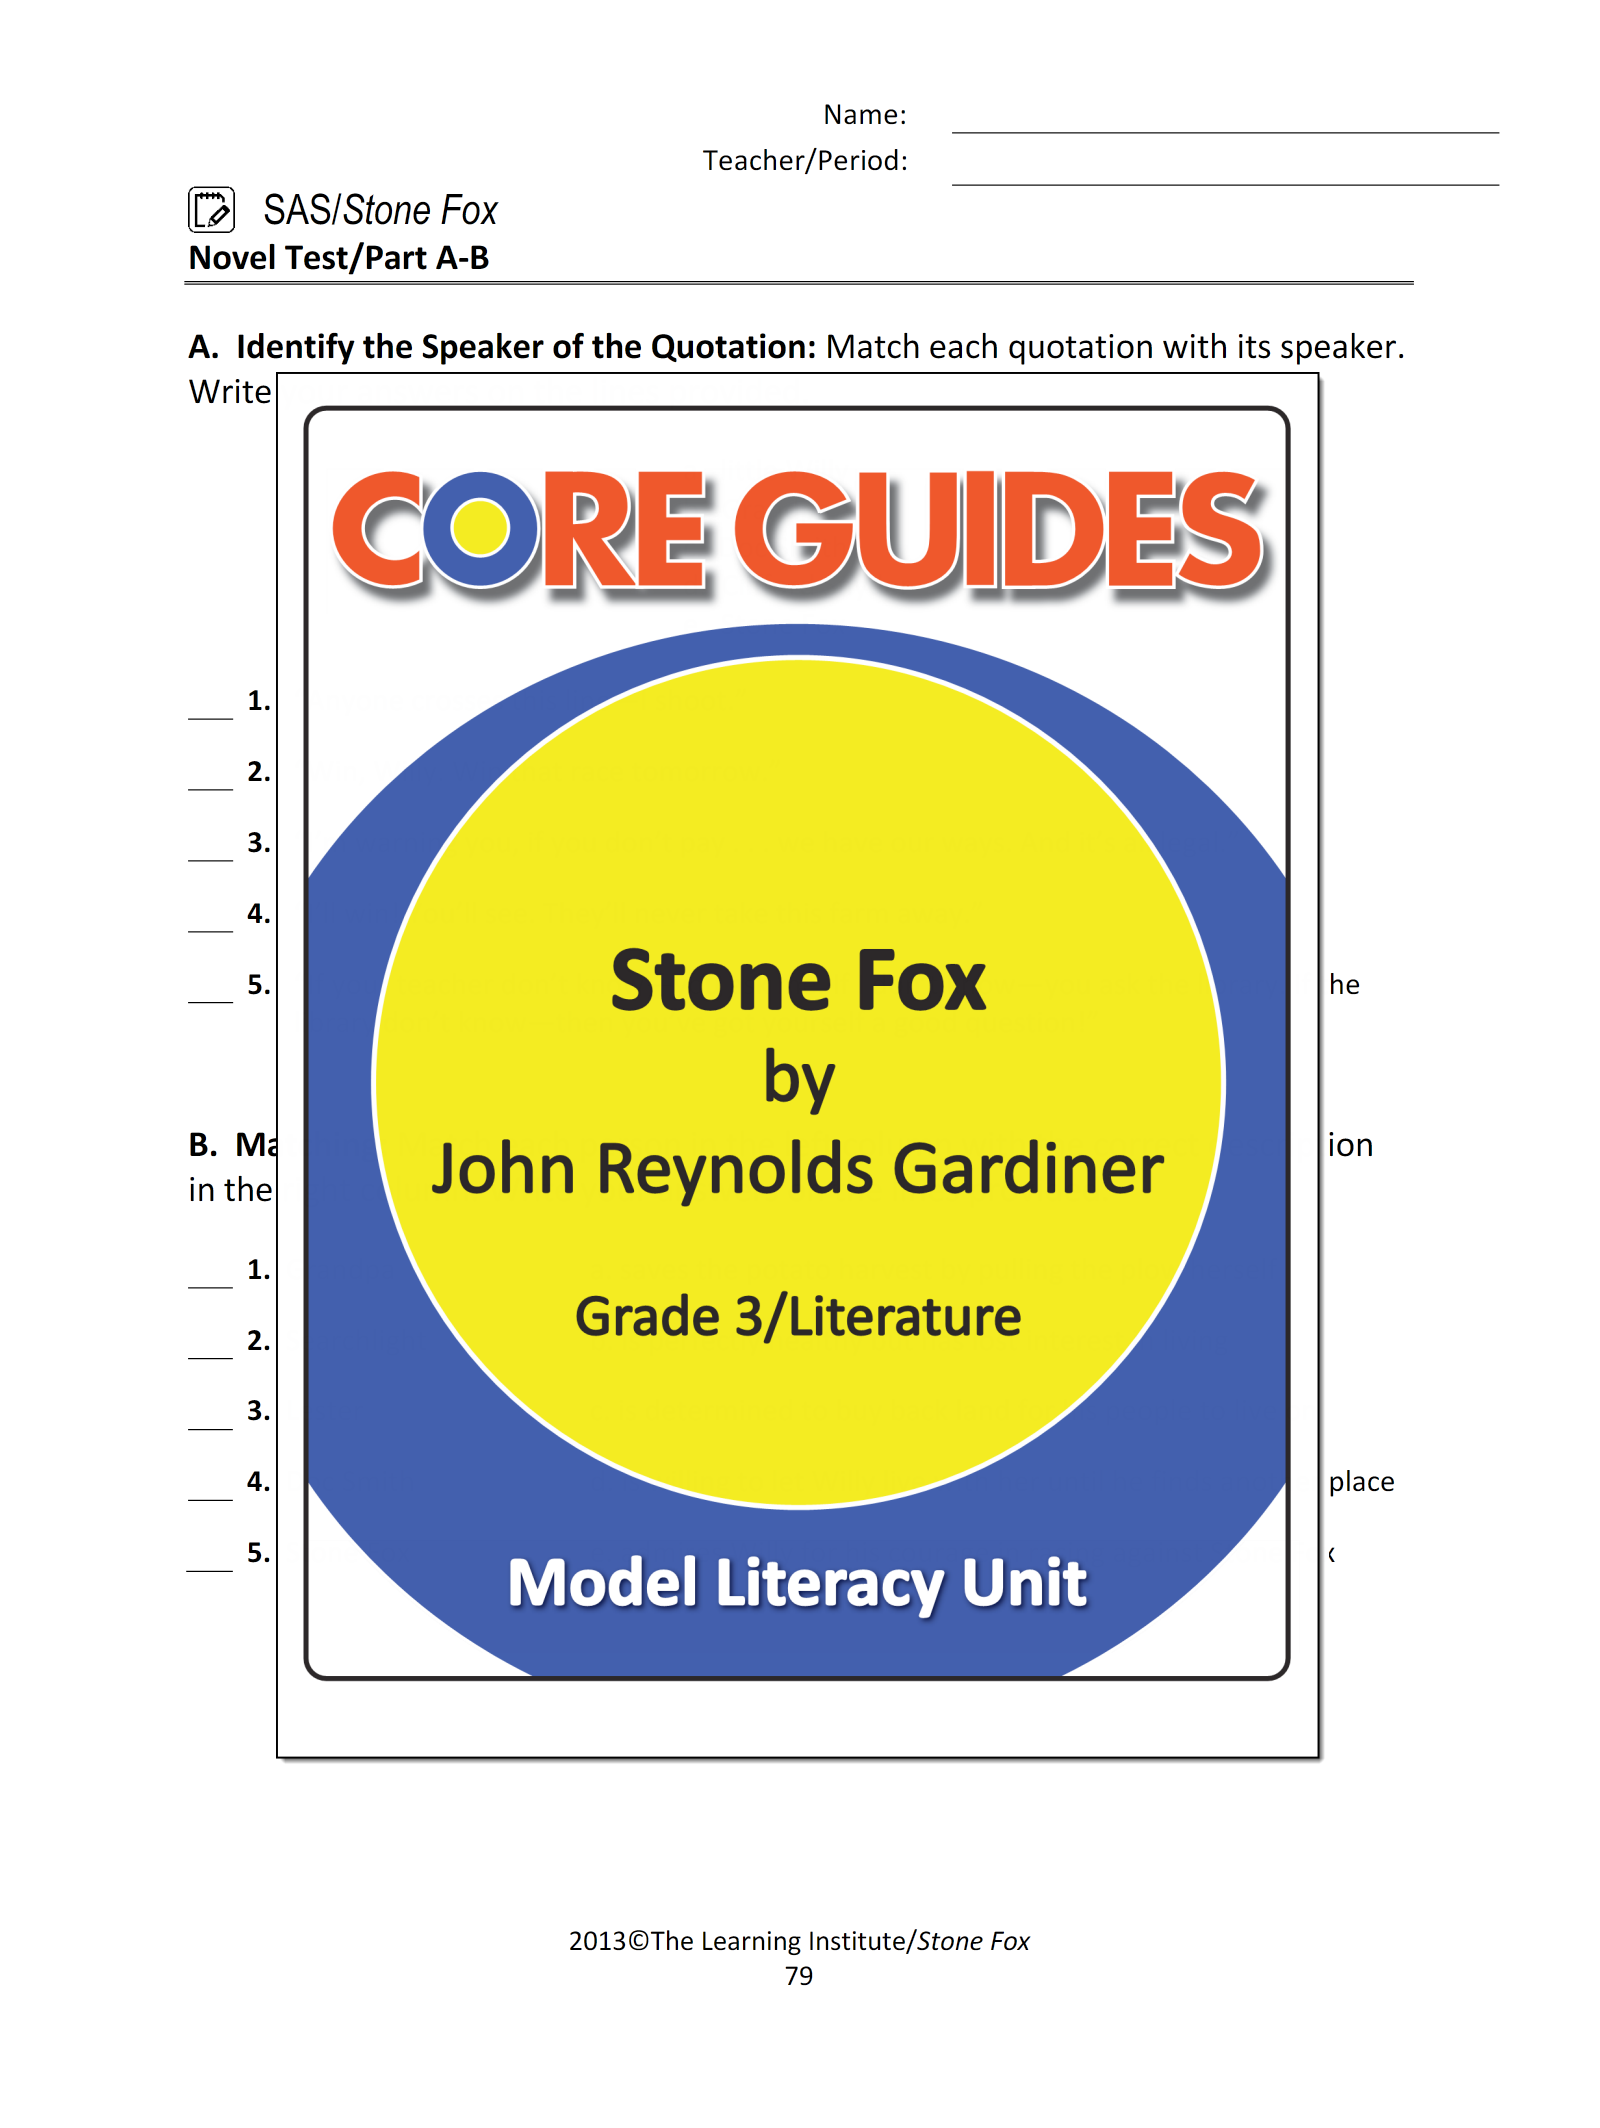 Worksheets Stone Fox Worksheets worksheet stone fox worksheets mytourvn study site download this freebie from our core guide on by john